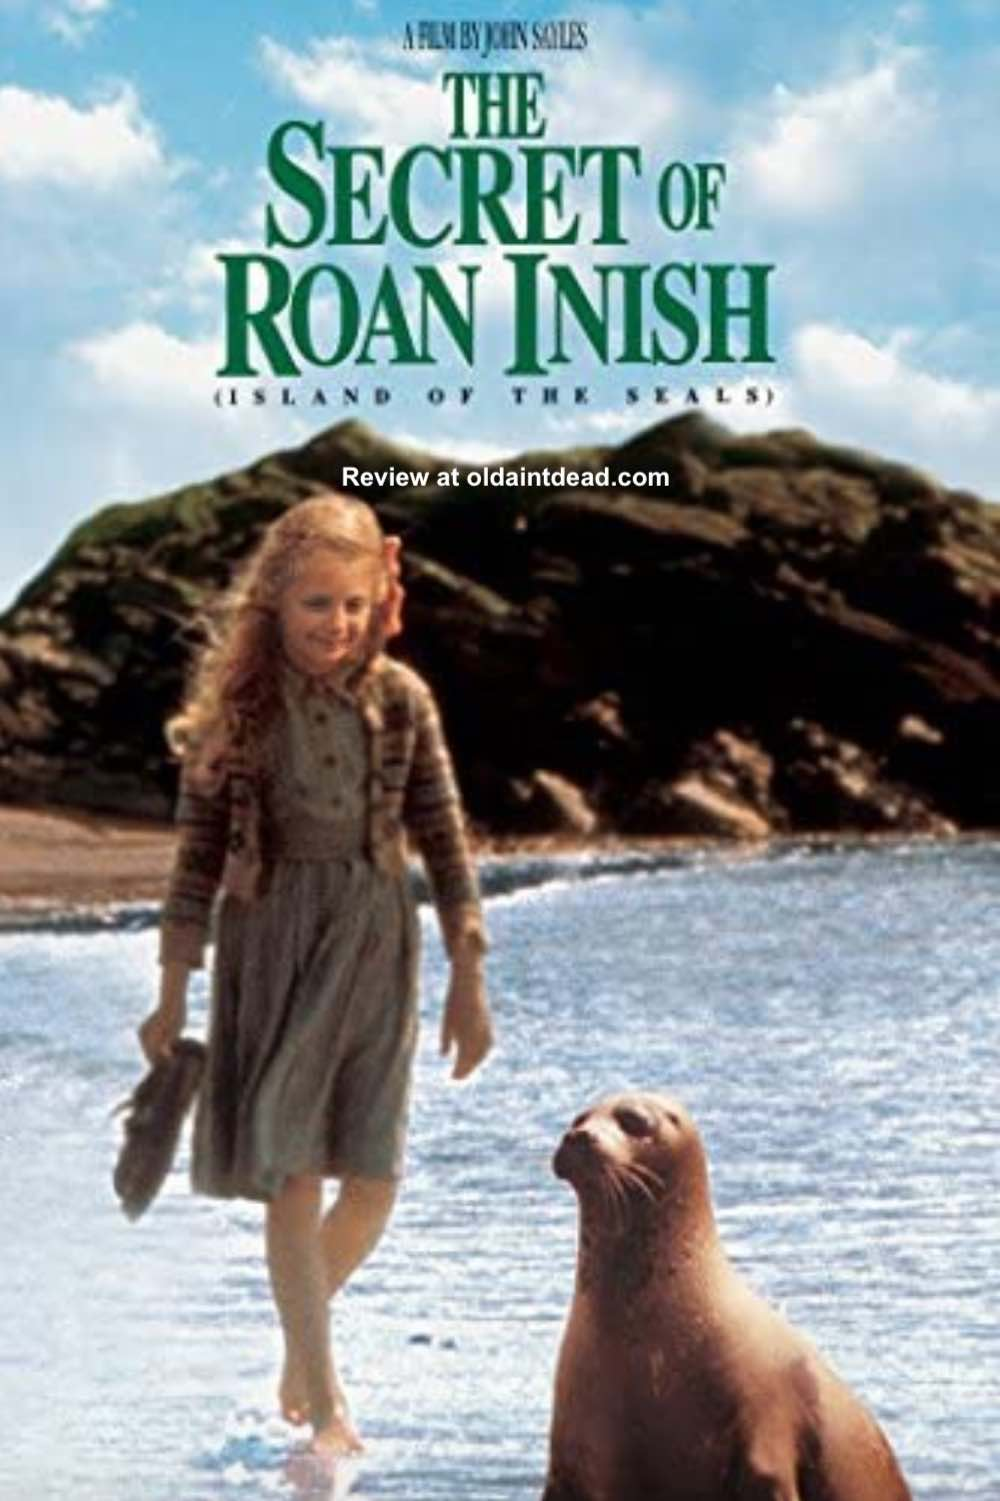 Poster for The Secret of Roan Inish